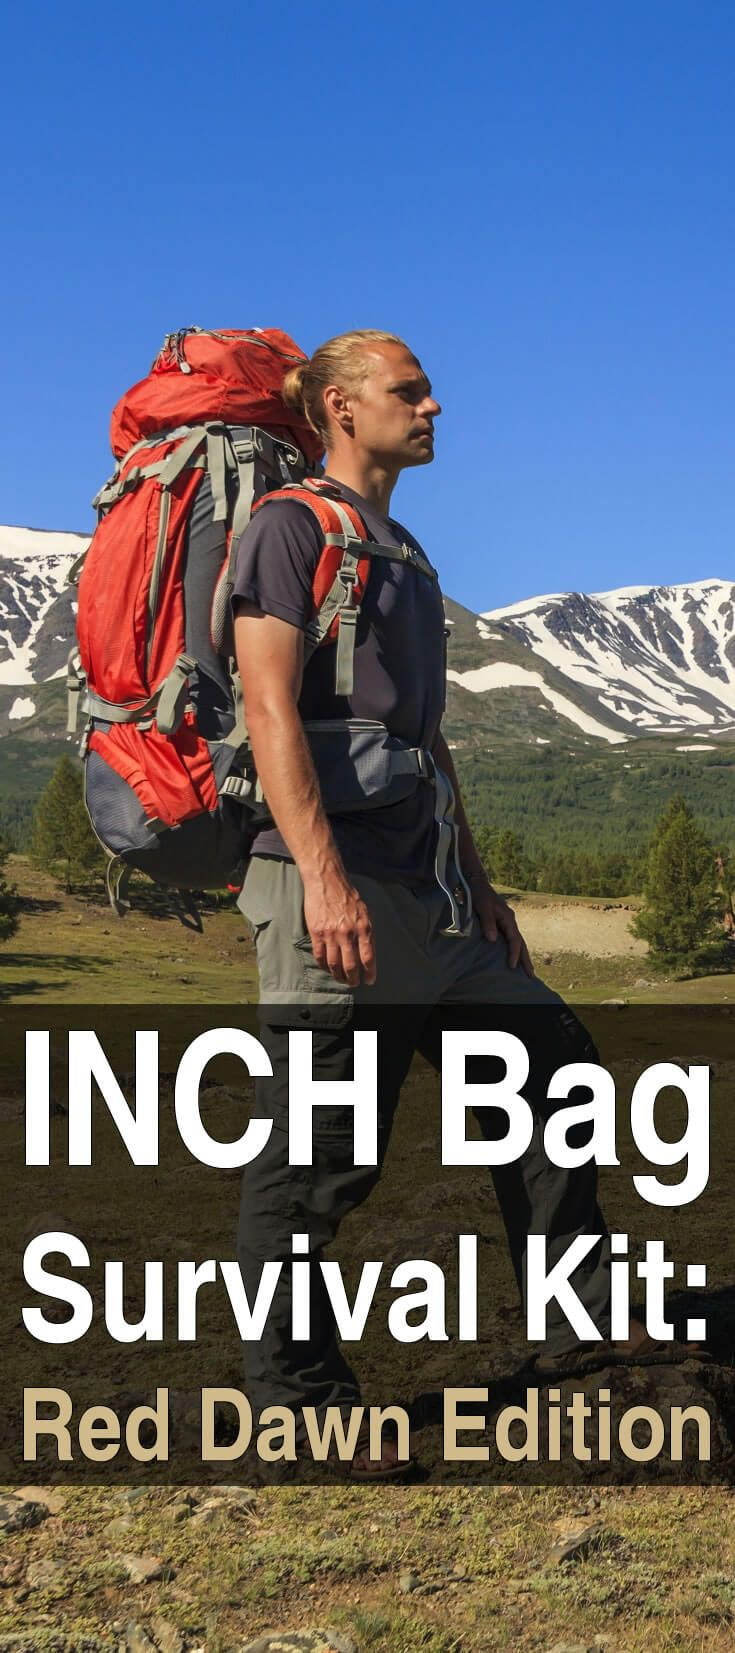 An INCH bag is the ultimate end-of-the-world bag, the kind of bag you'd want to have if you were heading to the hills during a Red Dawn type disaster.